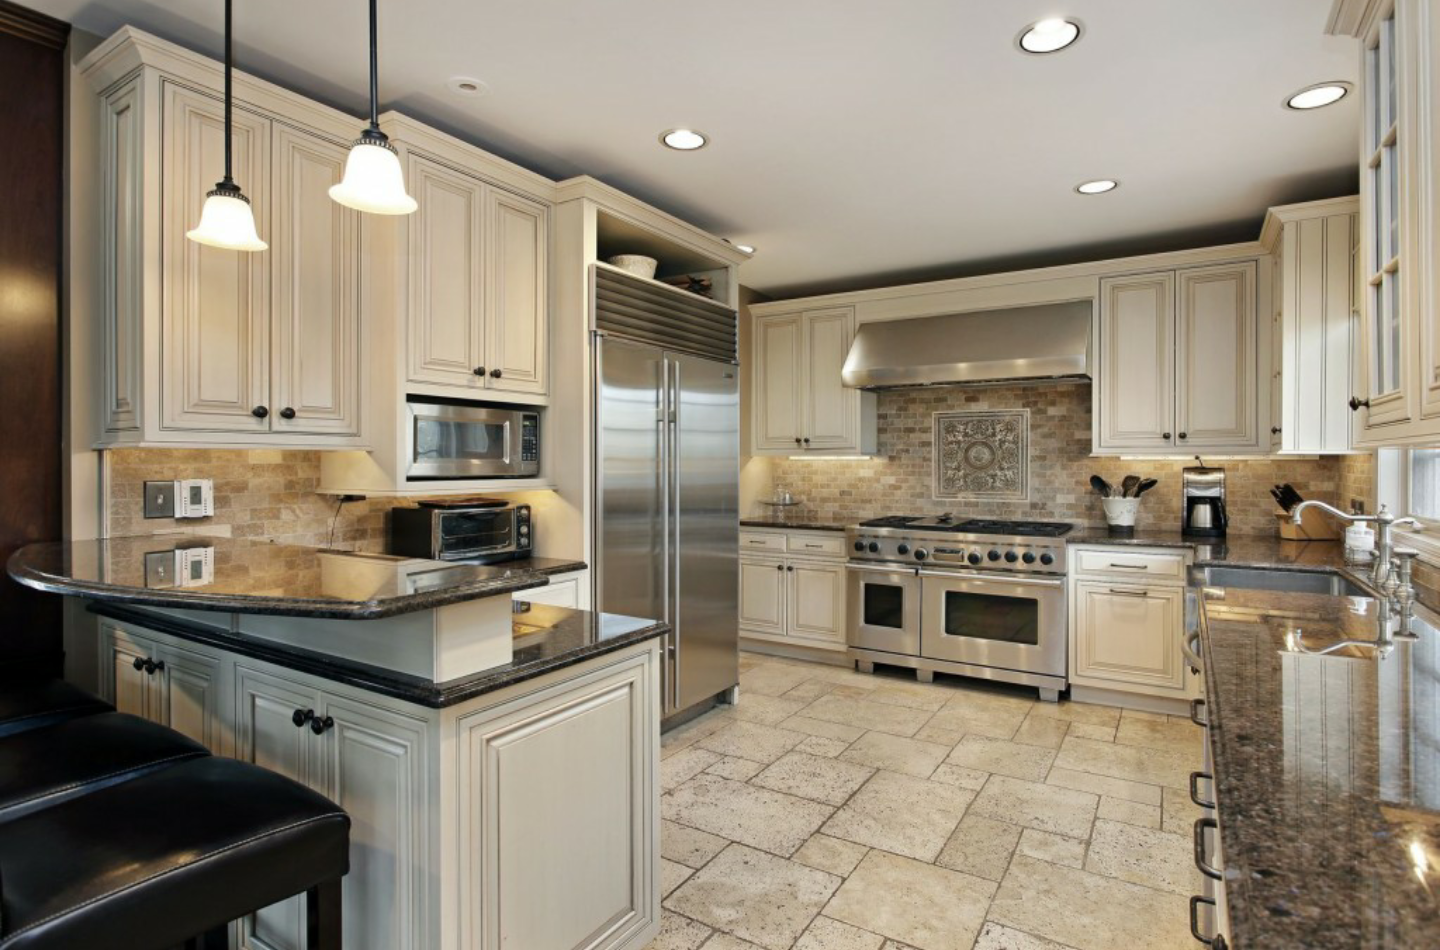 Cabinet Refinishing And Kitchen Cabinet Painting Of Boulder Co - Kitchen cabinet painters near me